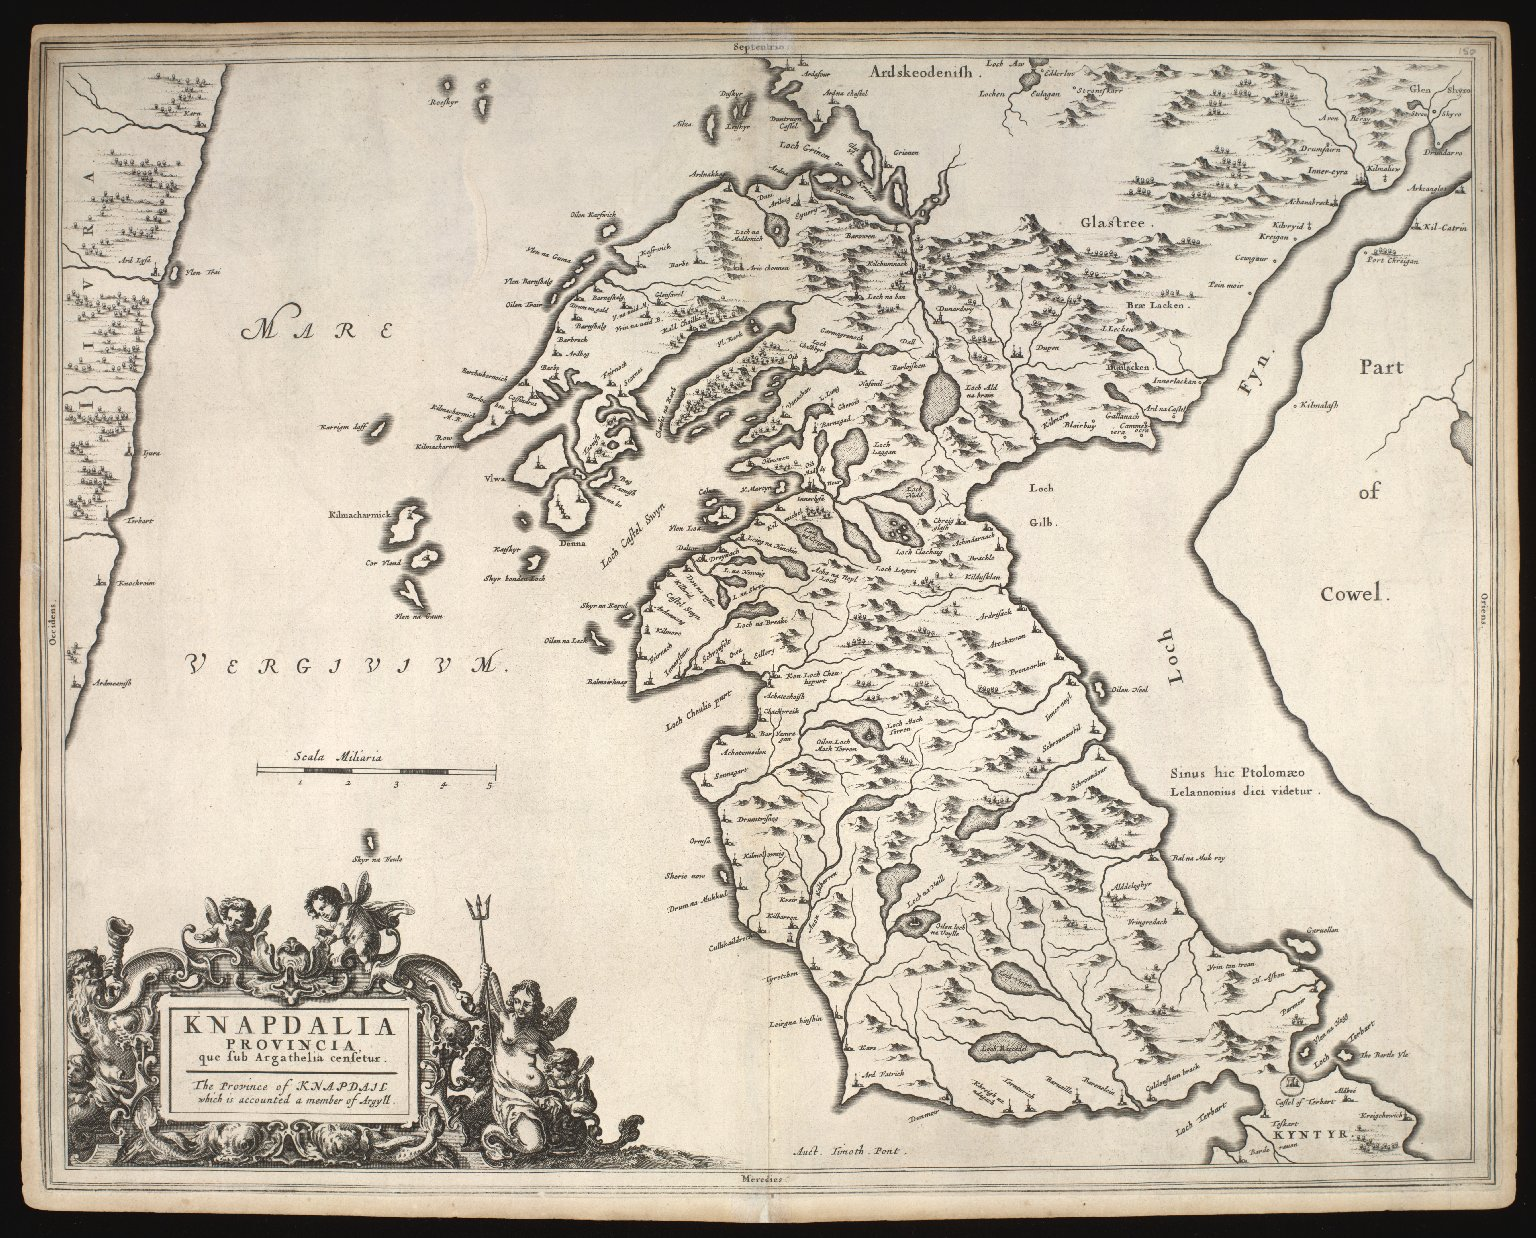 Knapdalia provincia que sub Argathelia censetur = The Province of Knapdail which is accounted a member of Argyll [1 of 1]